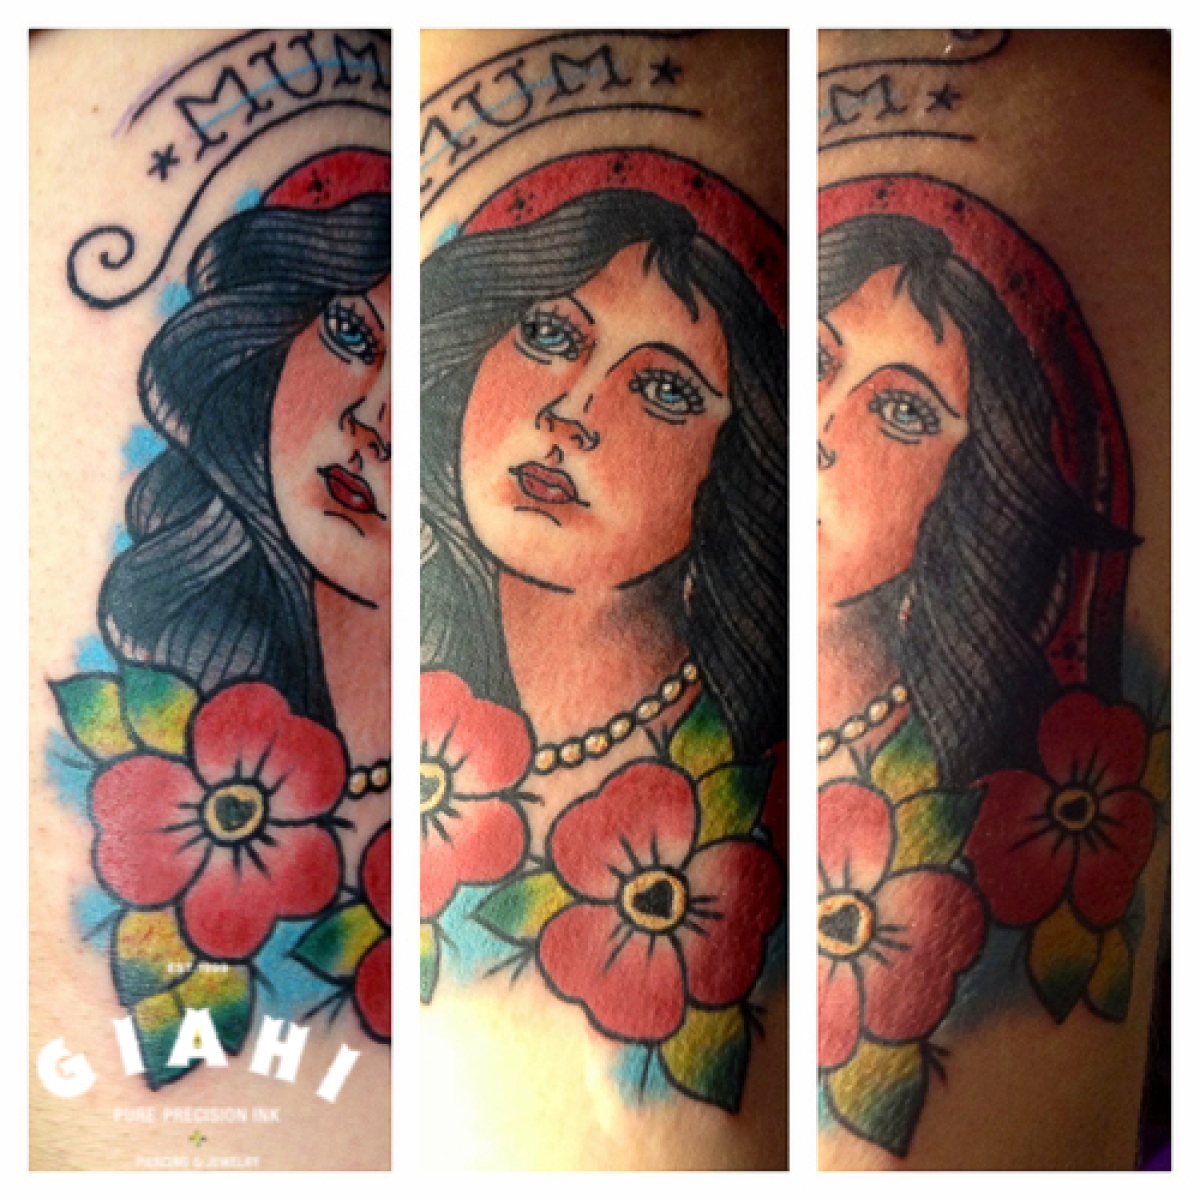 Mum Lettering Woman Old School tattoo by Elda Bernardes